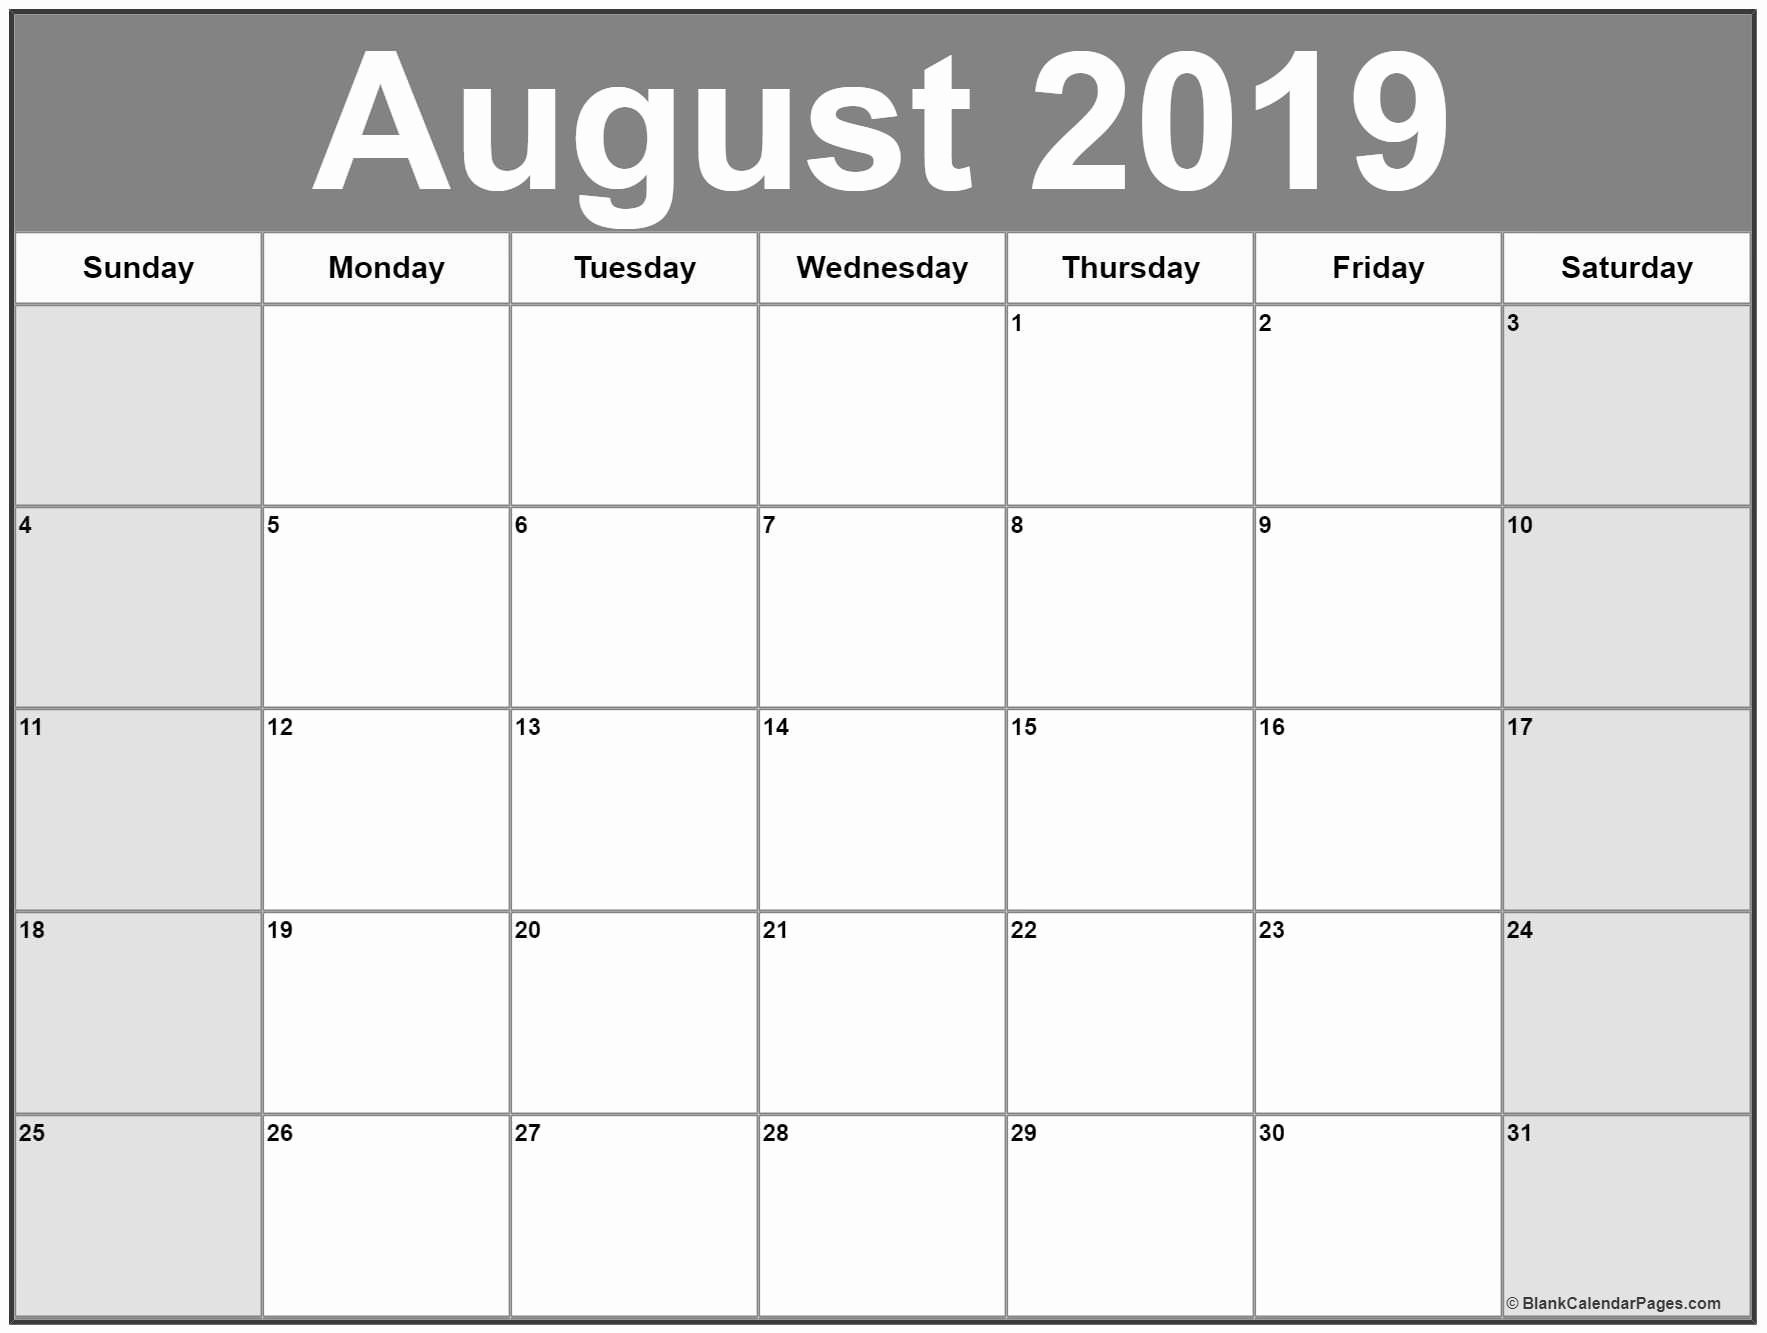 you can get here august 2019 calendar template blank word